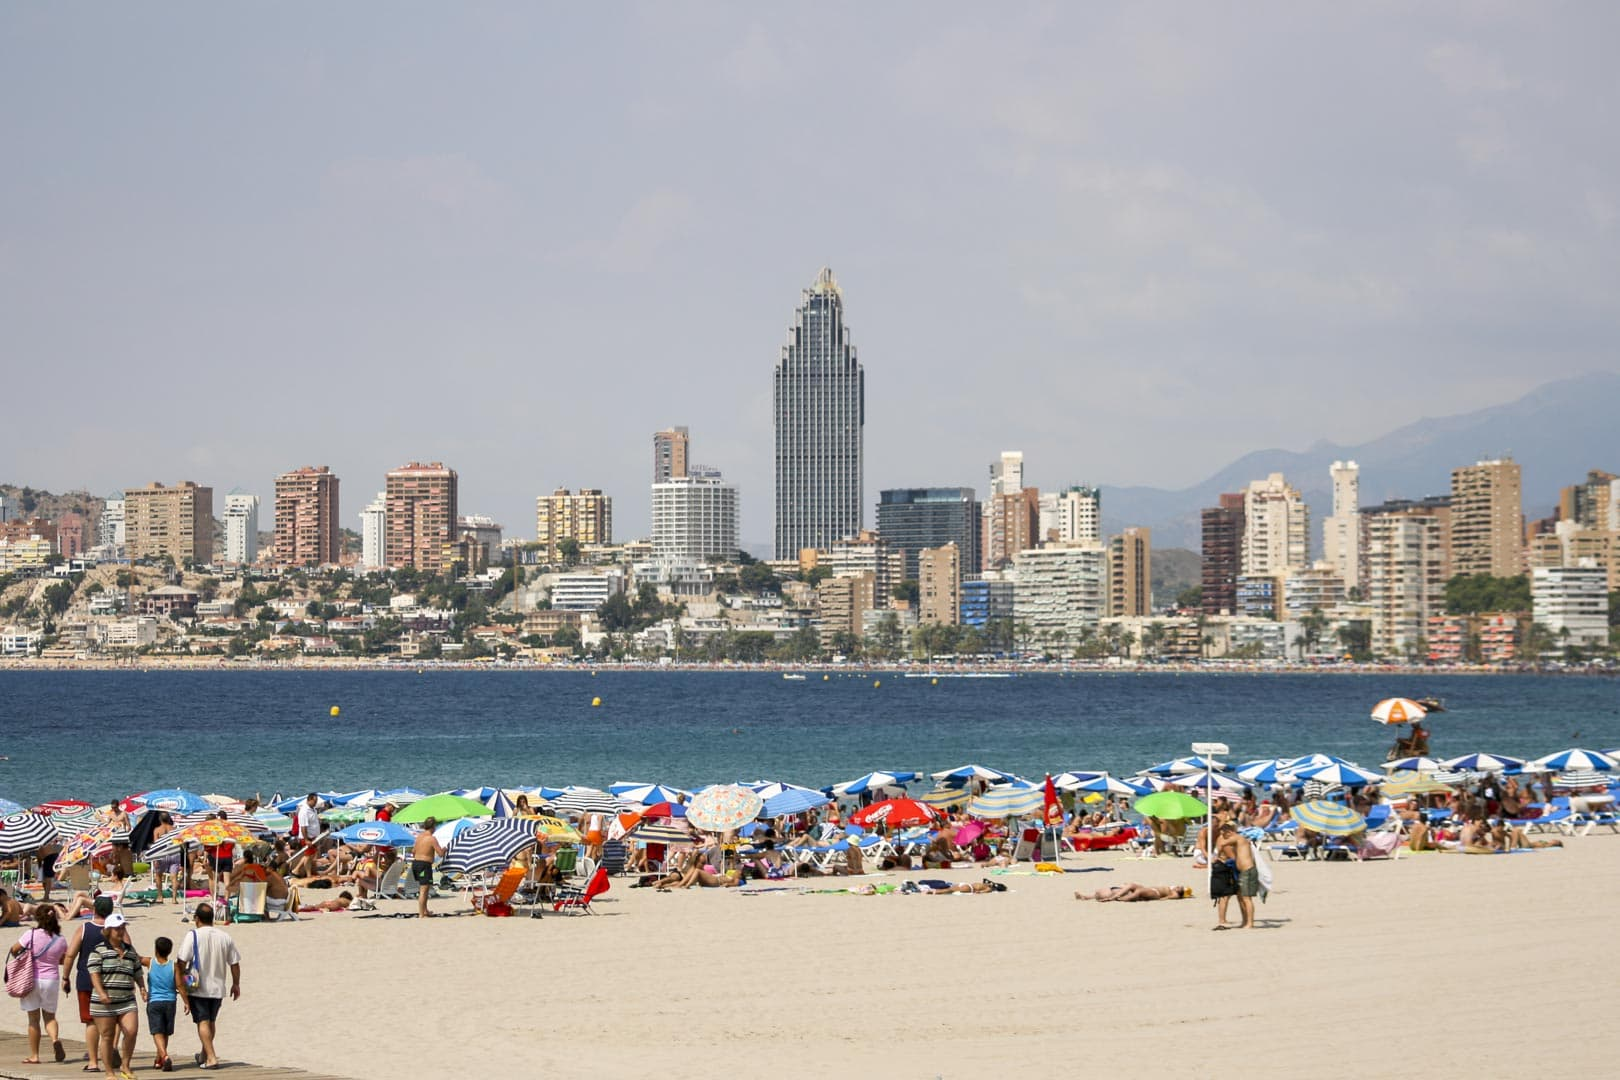 Benidorm (Alicante) – Spain, Beach and Skyline